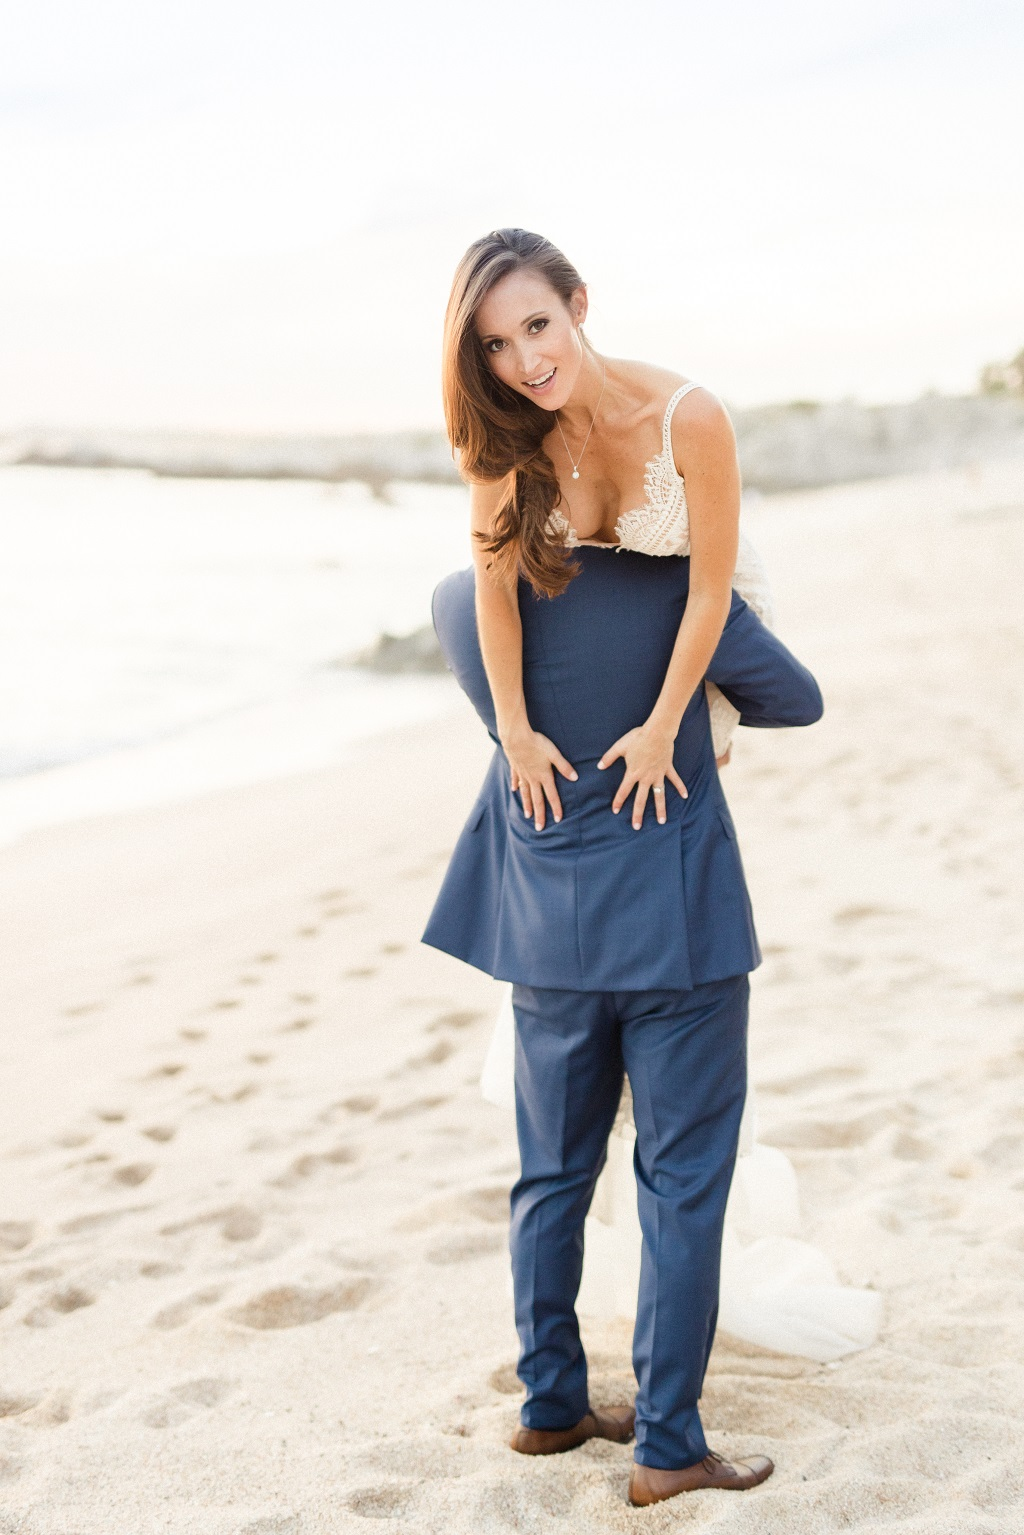 Cabo Wedding Photos on the Beach Mexico Photographer Sara Richardson-5113